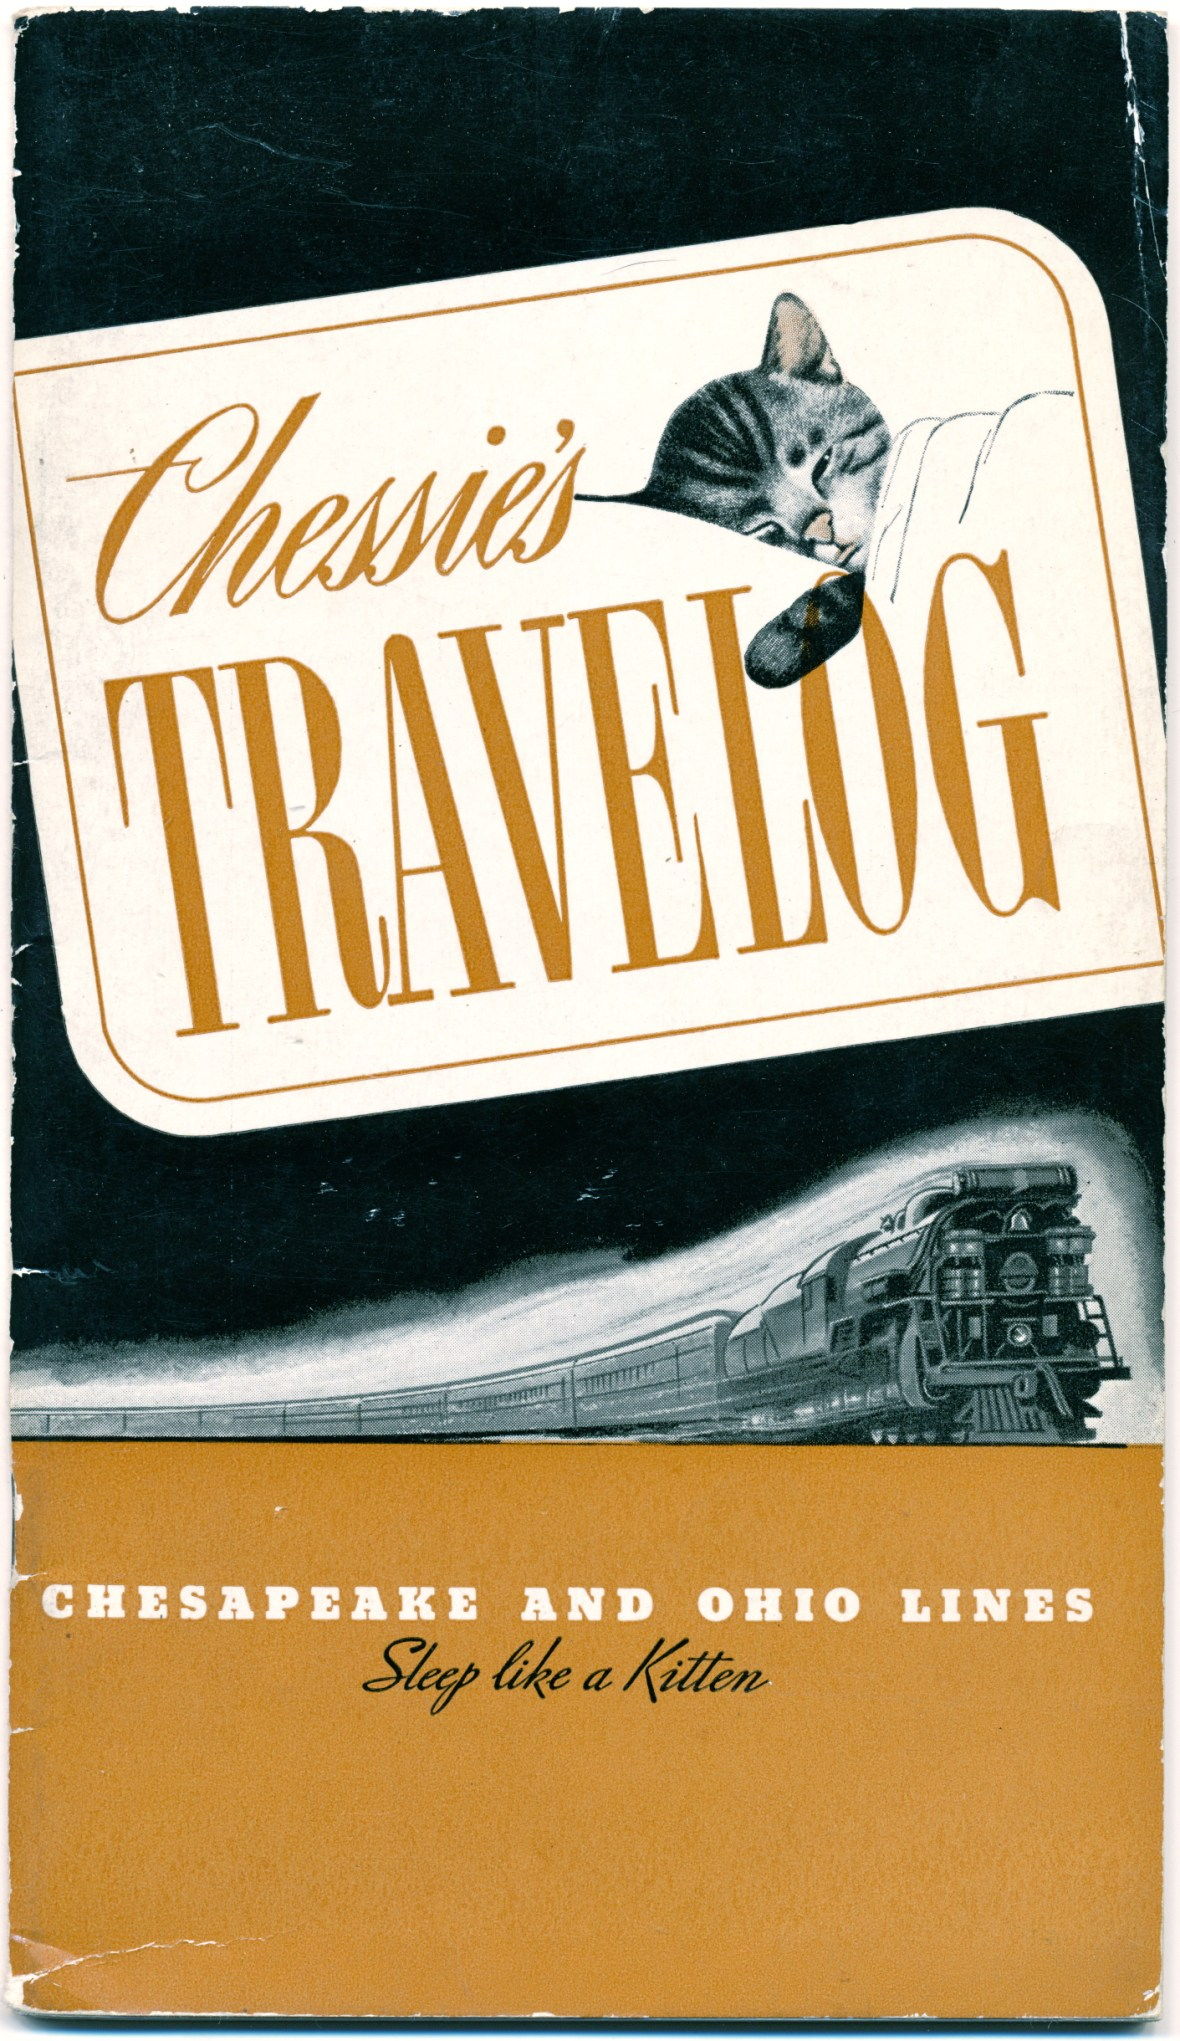 Chesapeake and Ohio Railway - 1940